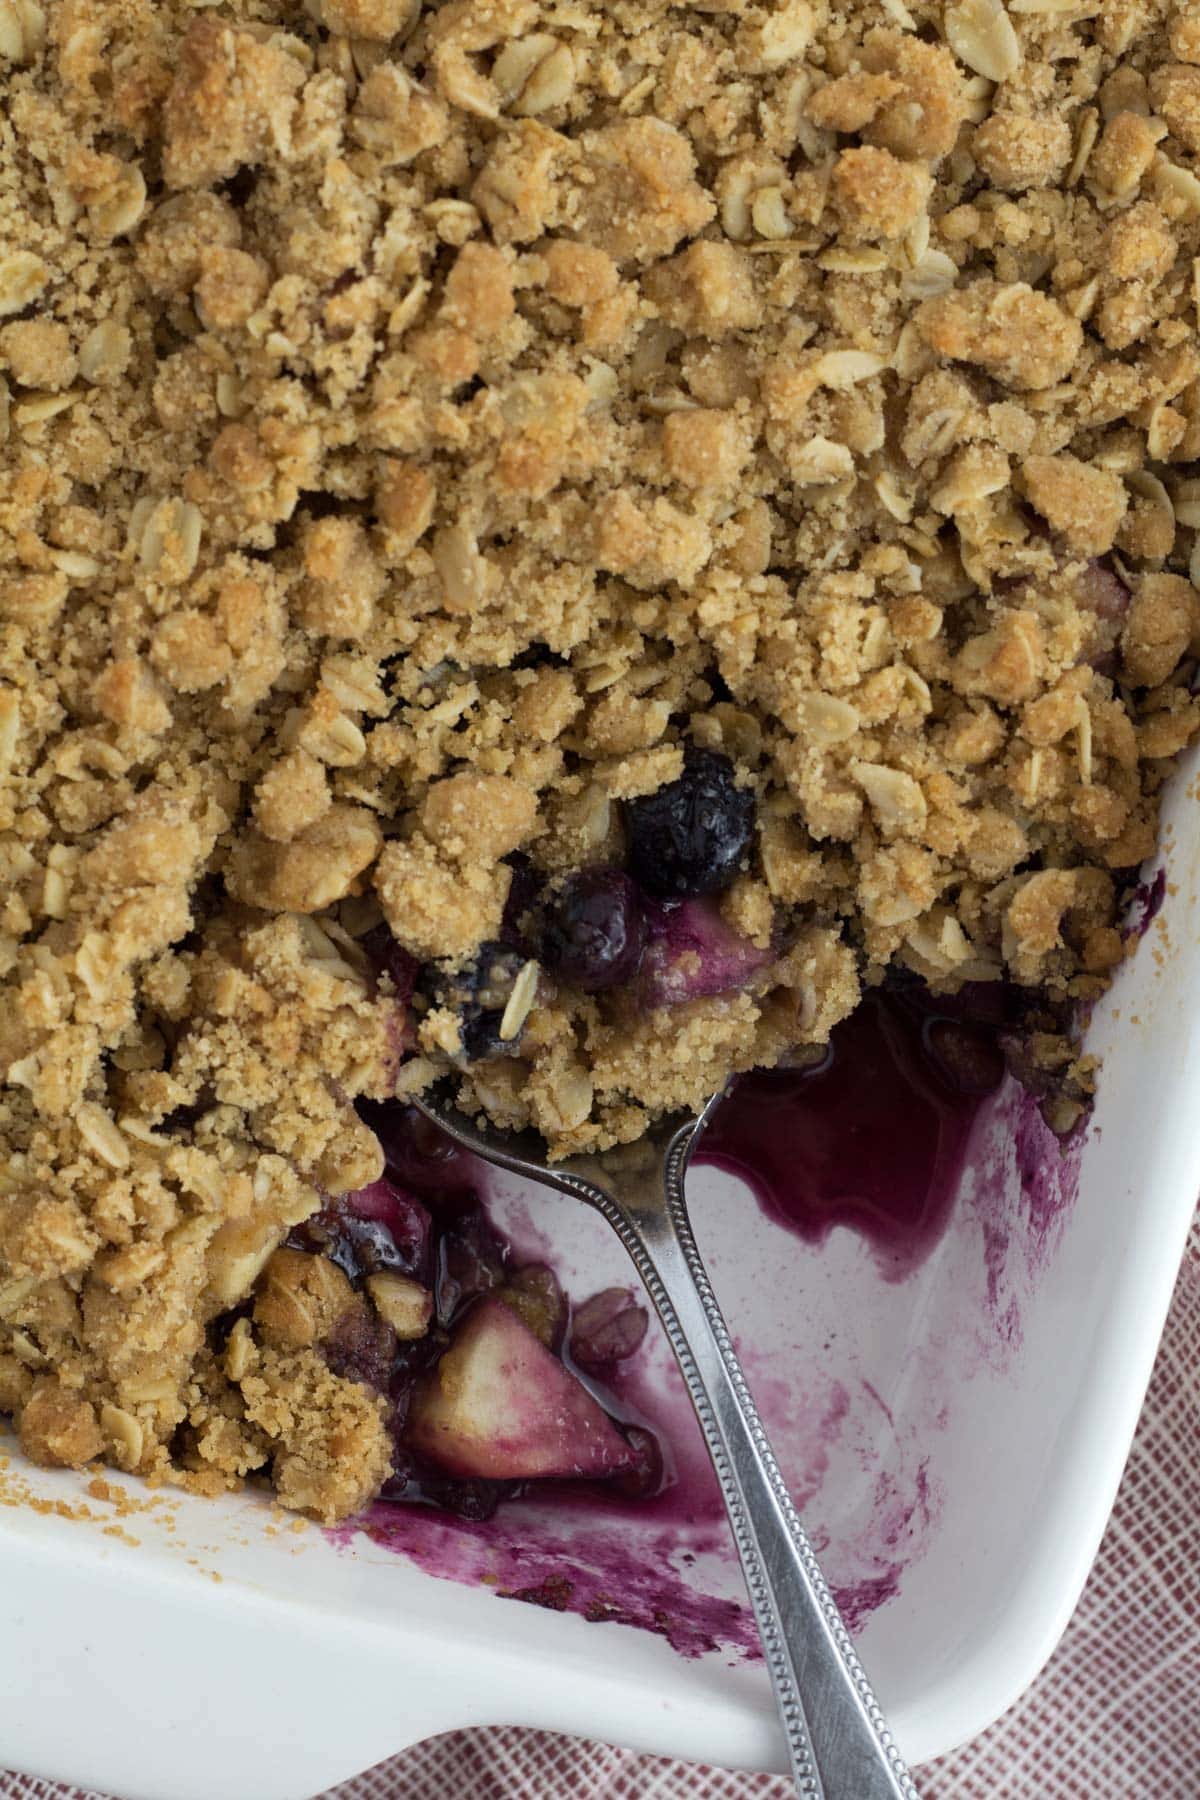 Spoon scooping golden brown crumble topping and baked fruit.